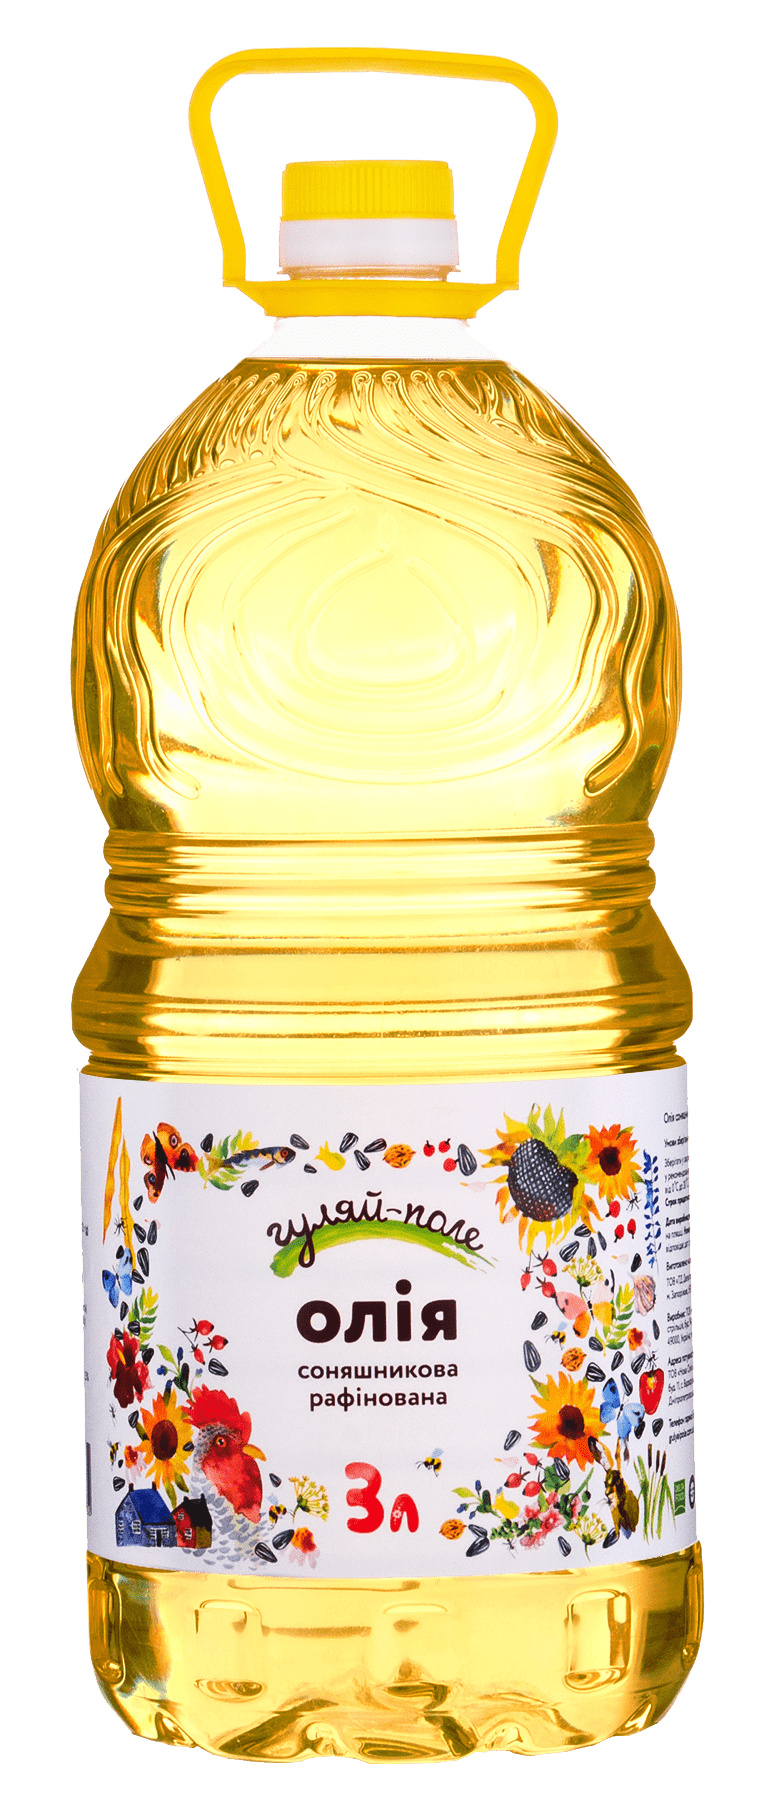 Sunflower oil refined deodorized  Гуляй-поле 3 L  2760 g